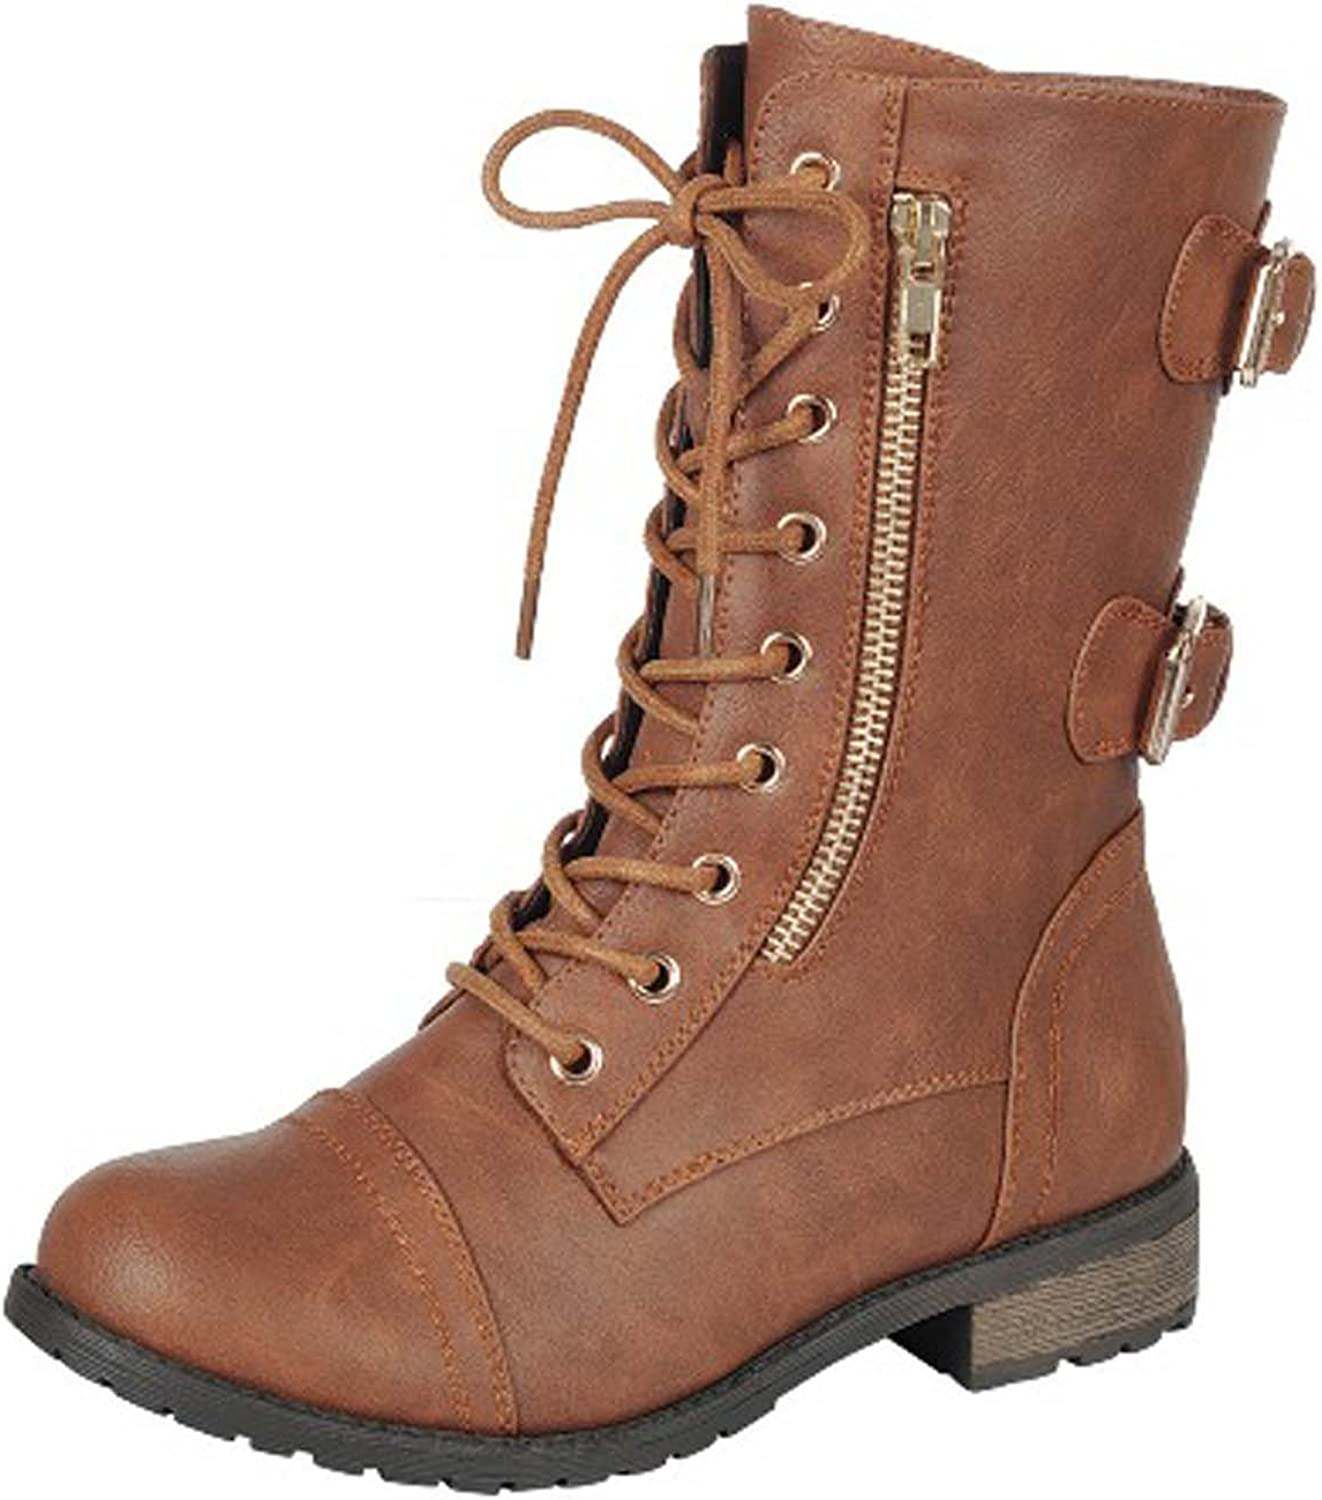 Forever Women's Mango-71 Faux Leather Military Style Ankle Boots with Thick Sole and Buckles